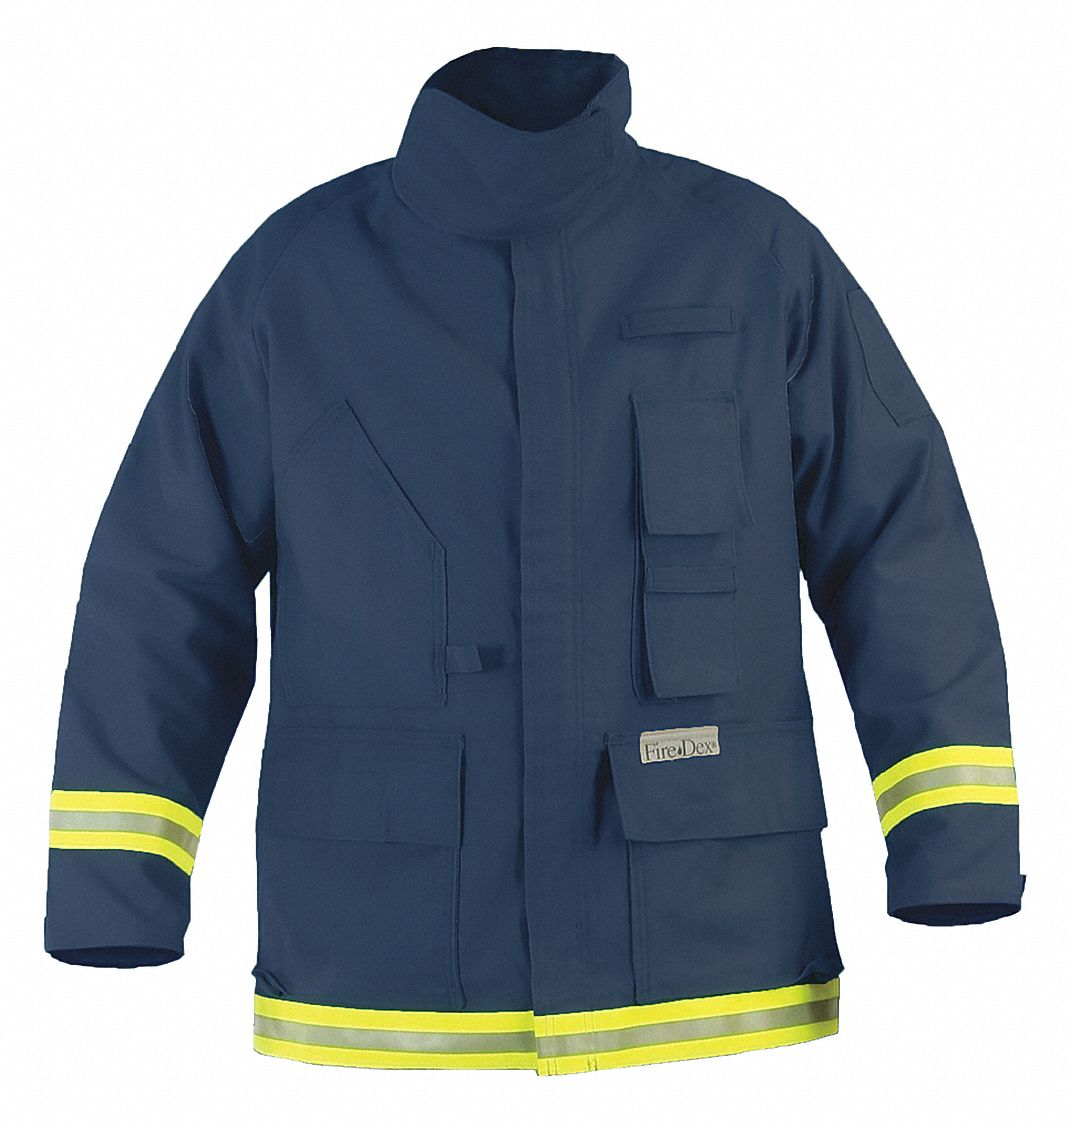 Navy Extrication Jacket,  L,  Fits Chest Size 46 in,  Zipper/Hook-and-Loop Closure Type